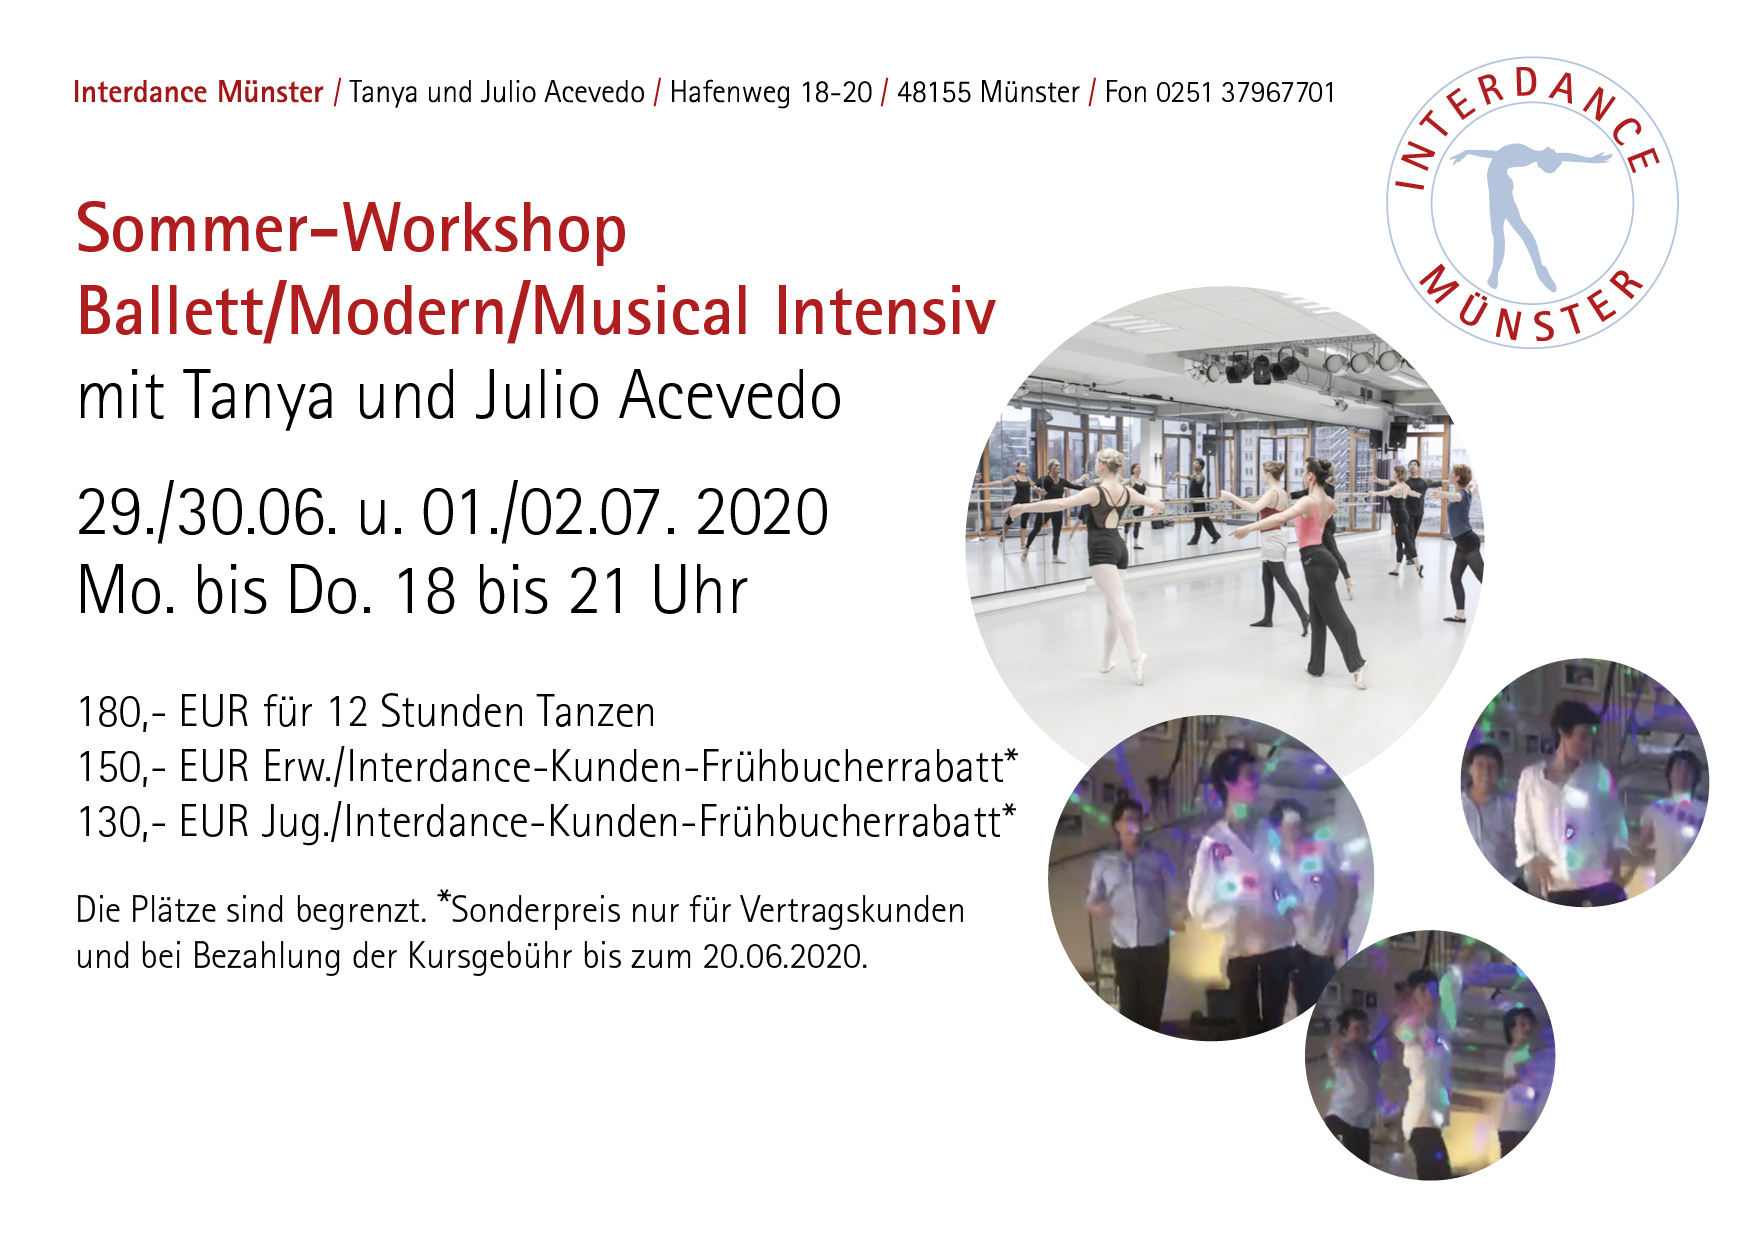 202007 Interdance Workshop Sommer